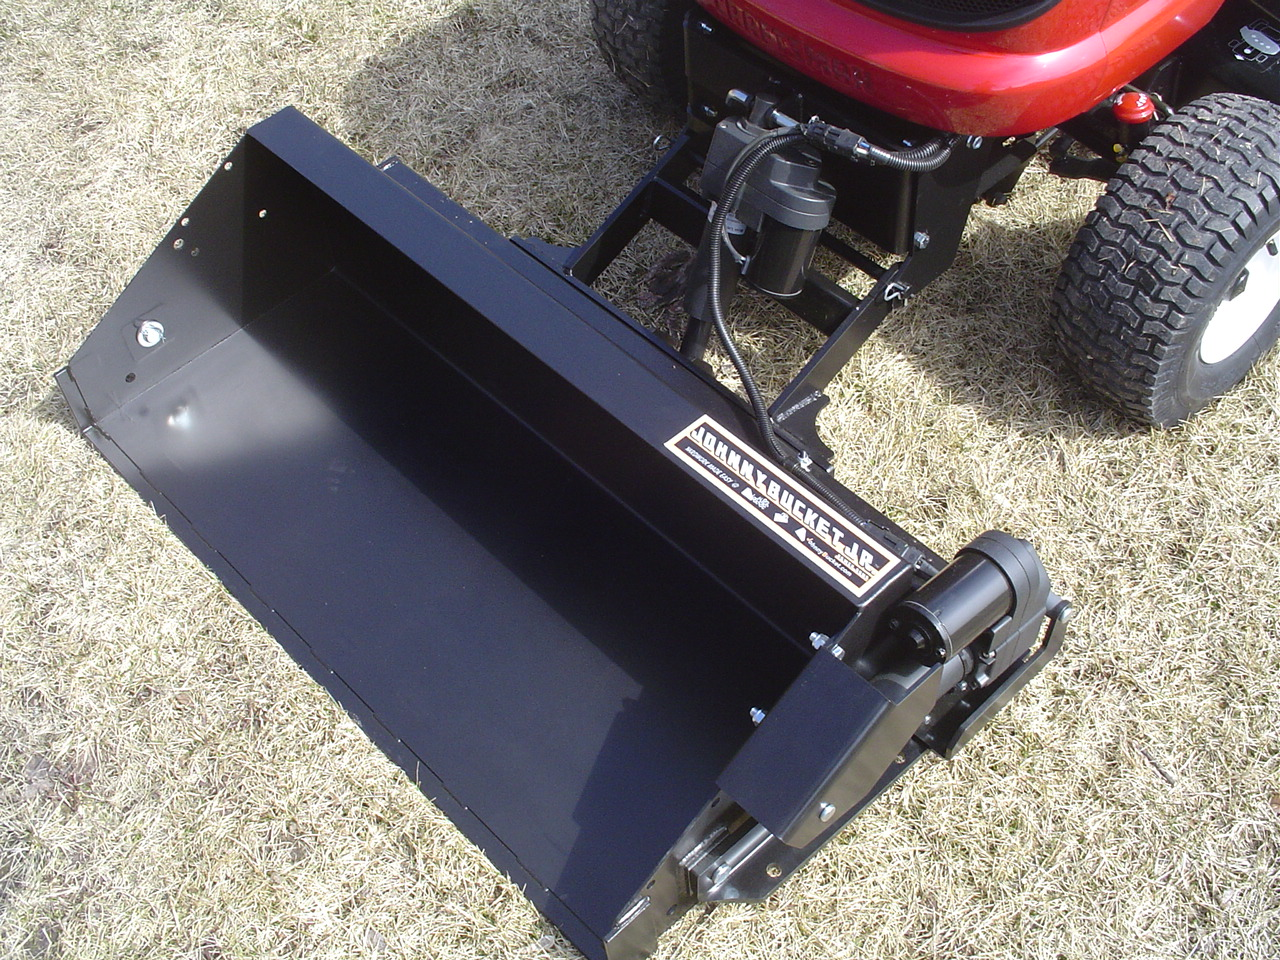 Craftsman Front Scoop Tractor Attachment : Garden tractor scoop attachment ftempo